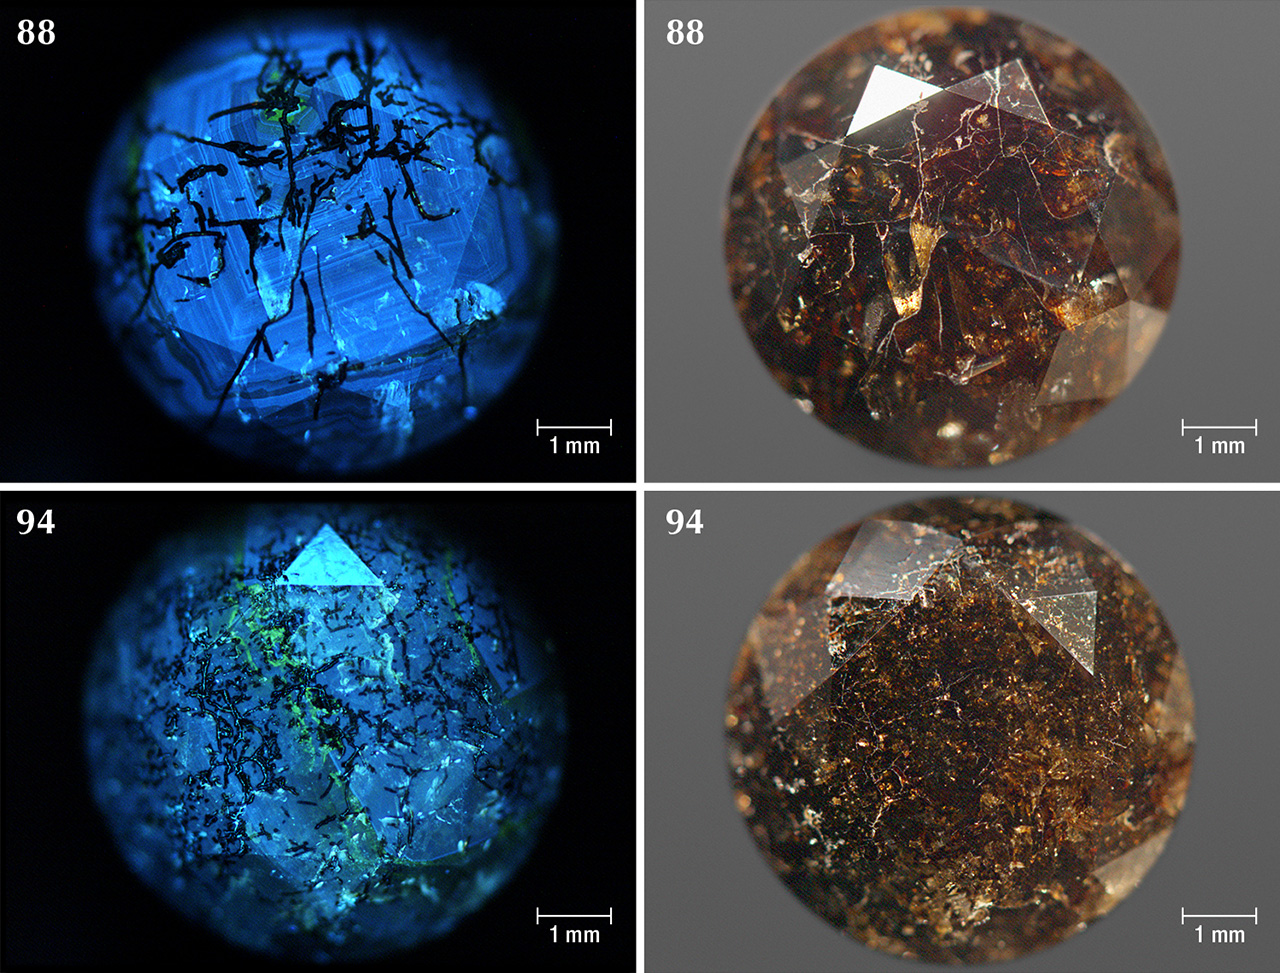 DiamondView images and photos of Marange diamonds that show radiation stains within fractures